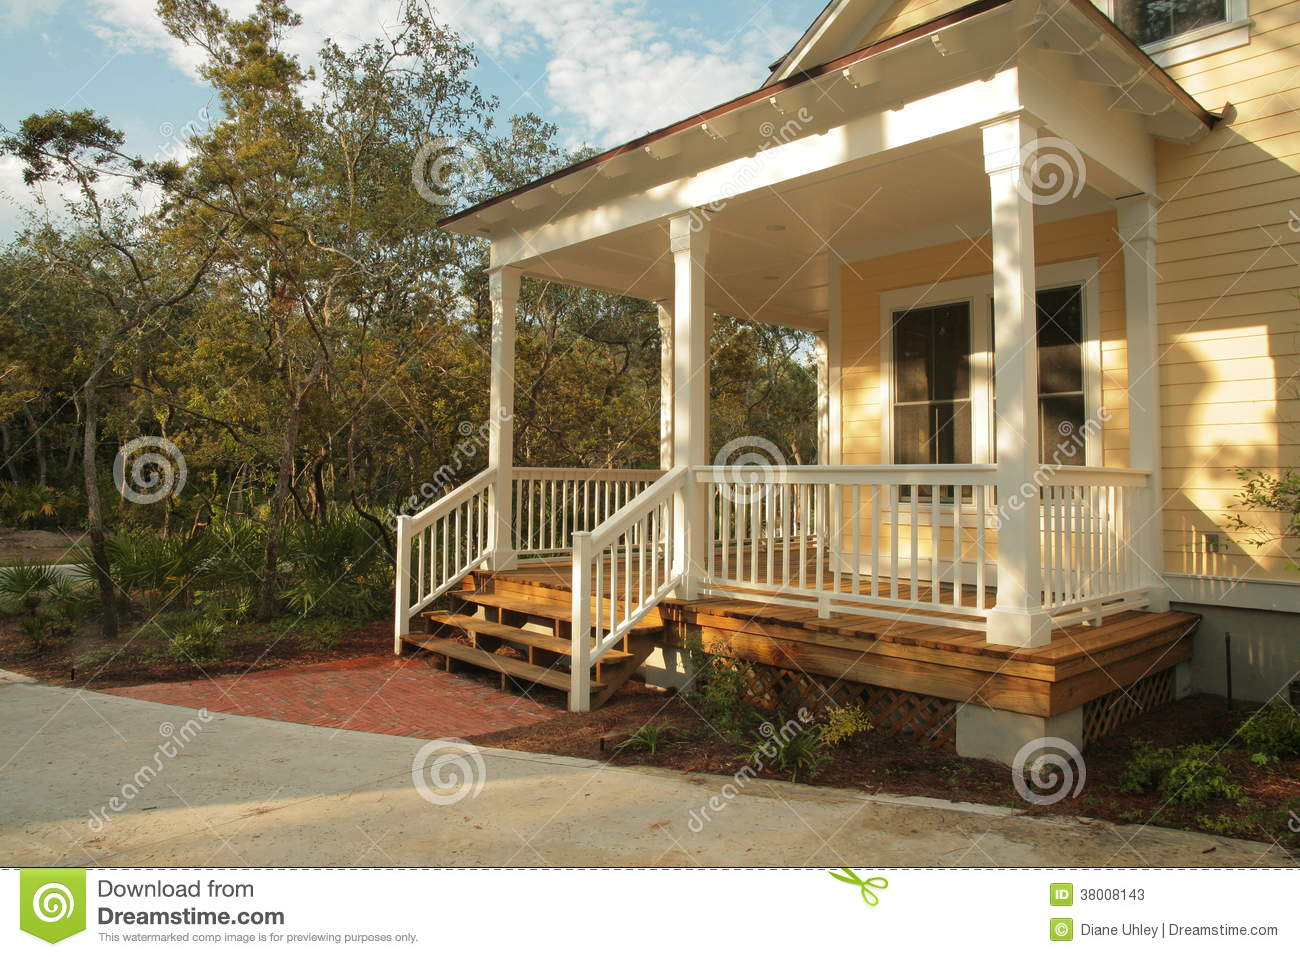 Front porch of yellow house stock photos image 38008143 for House with a porch